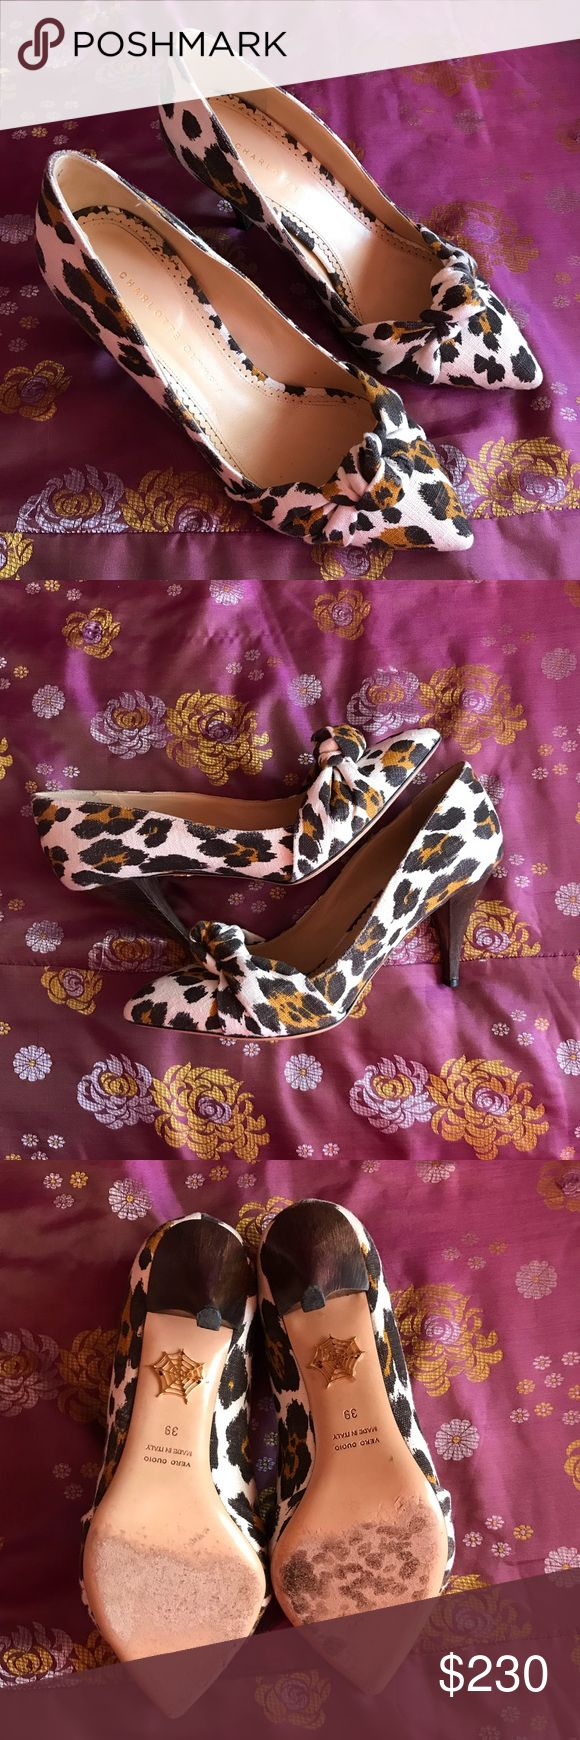 Charlotte Olympia Pumps Canvas leopard pump with a three inch dark wooden heel. They are light, comfy, and fun! Heels are white with a black and brown Leopard print. Charlotte Olympia Shoes Heels